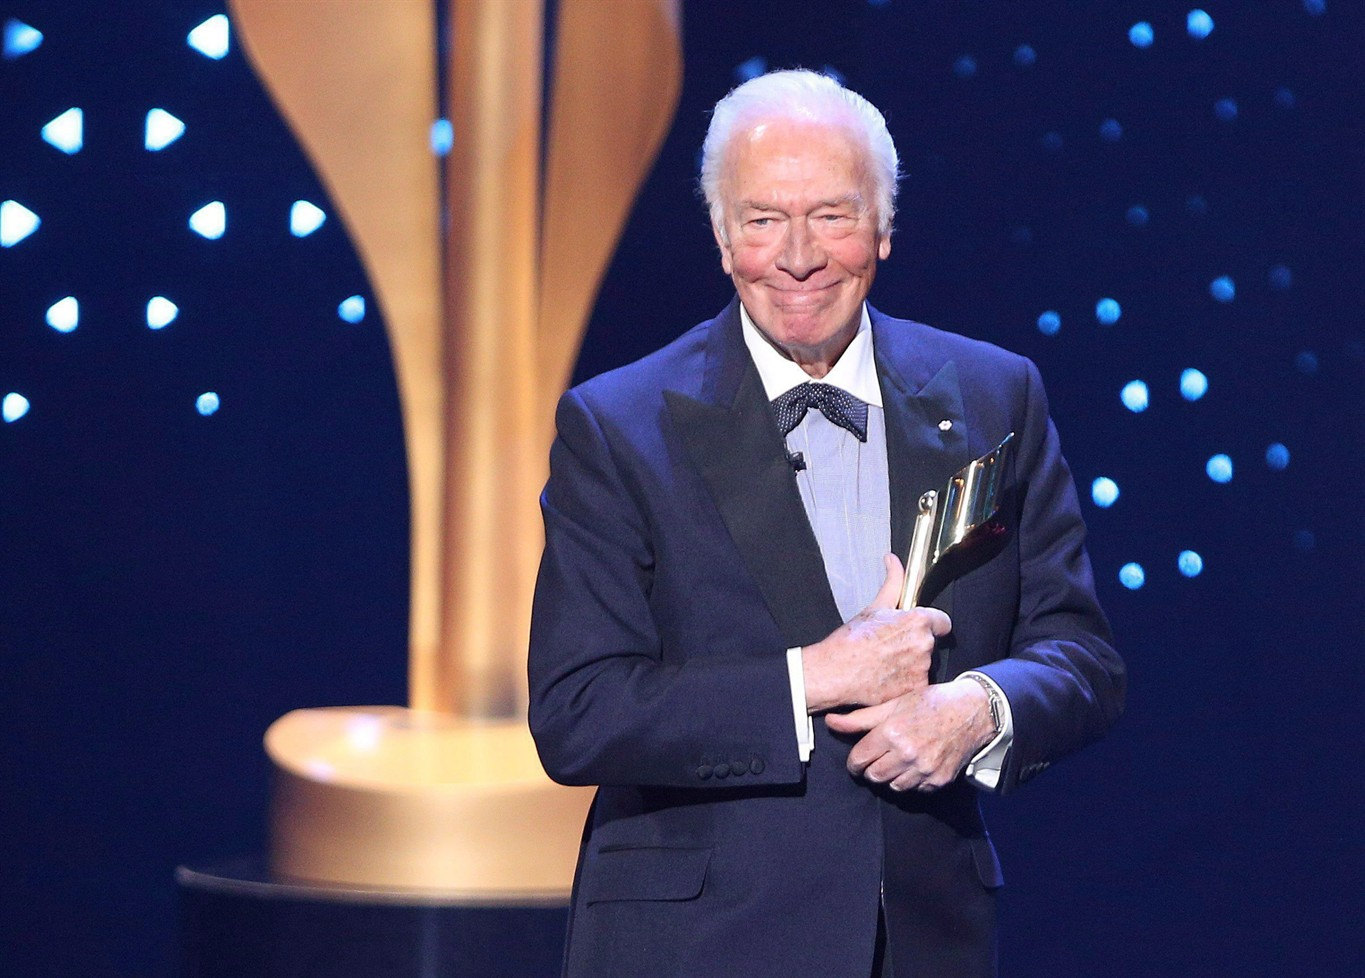 After Replacing Spacey, Plummer Is Nominated For A Golden Globe